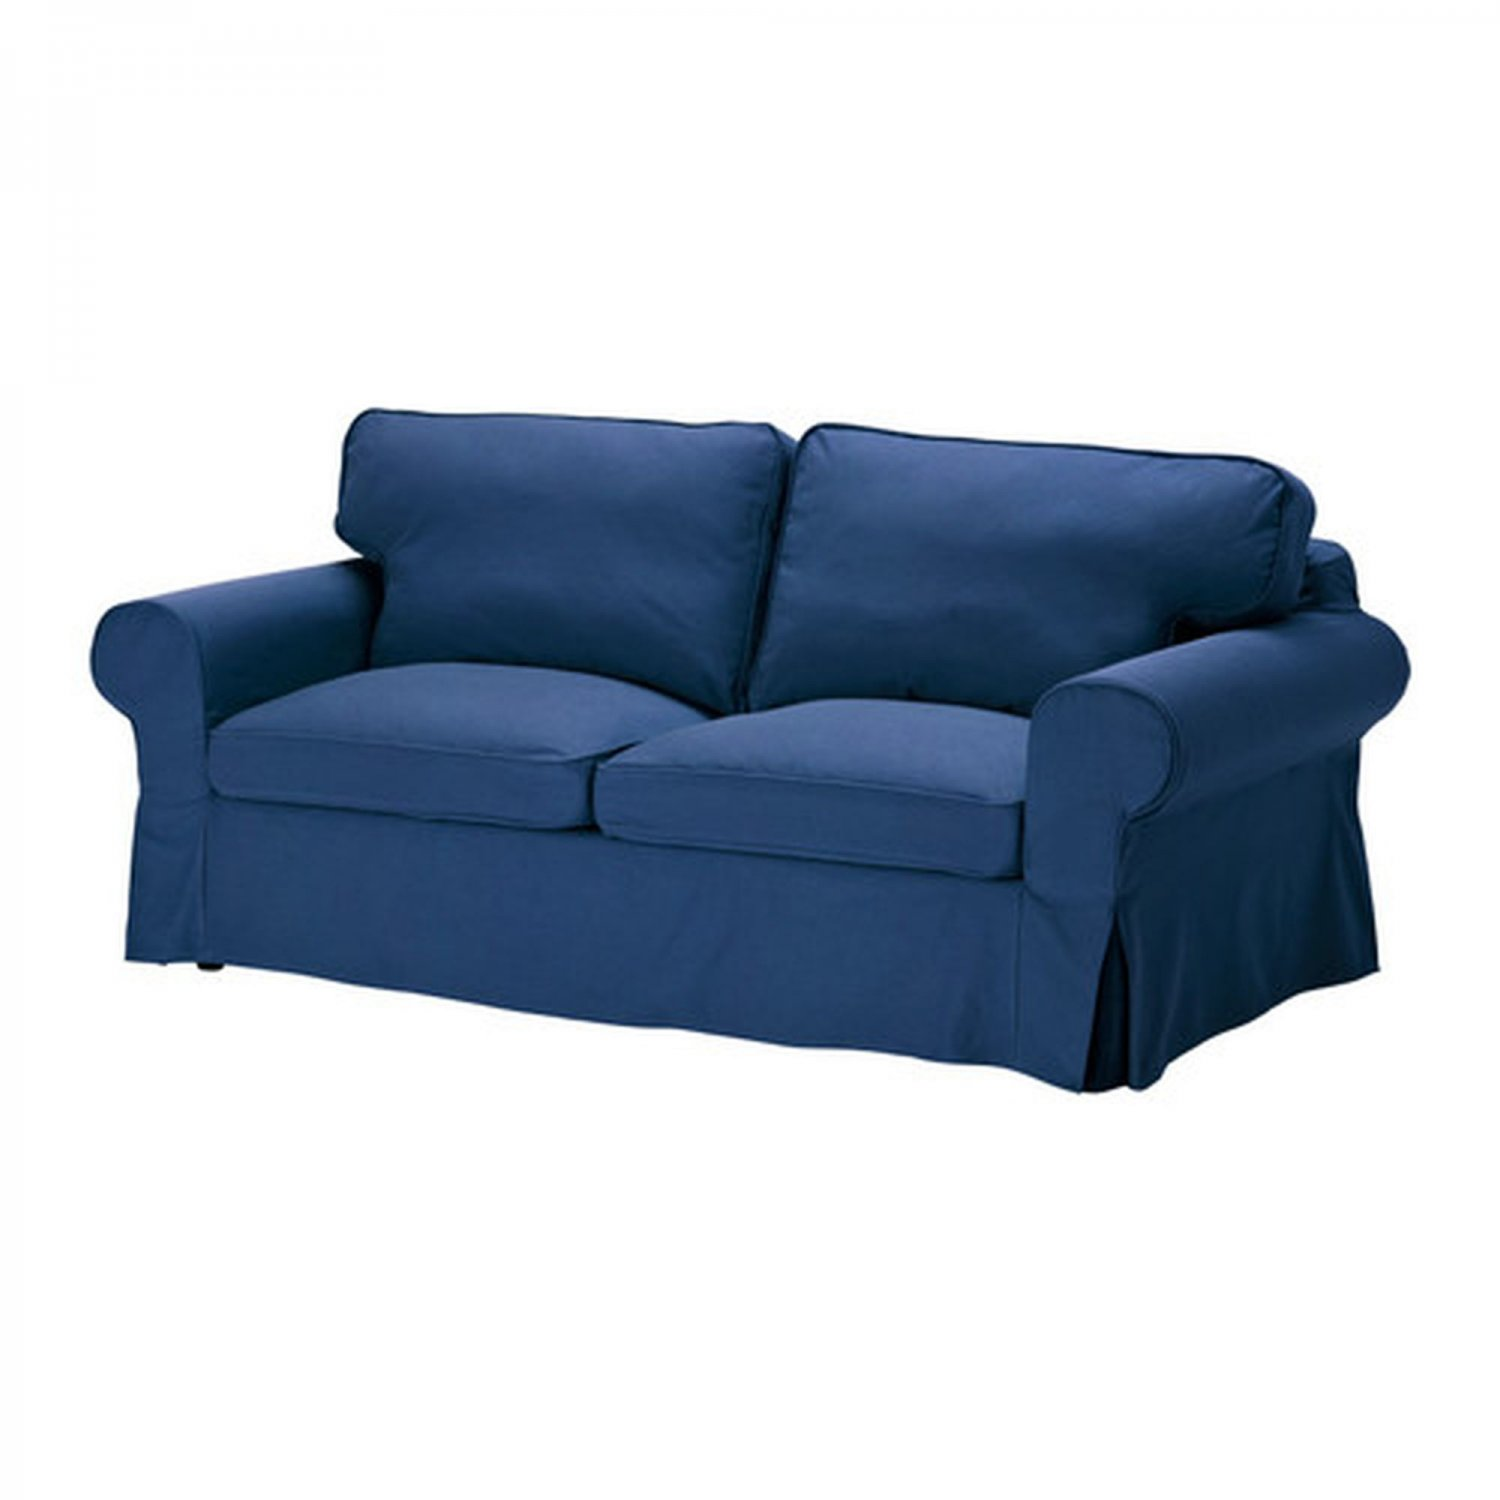 Ikea ektorp 2 seat sofa cover loveseat slipcover idemo blue Loveseat slip cover